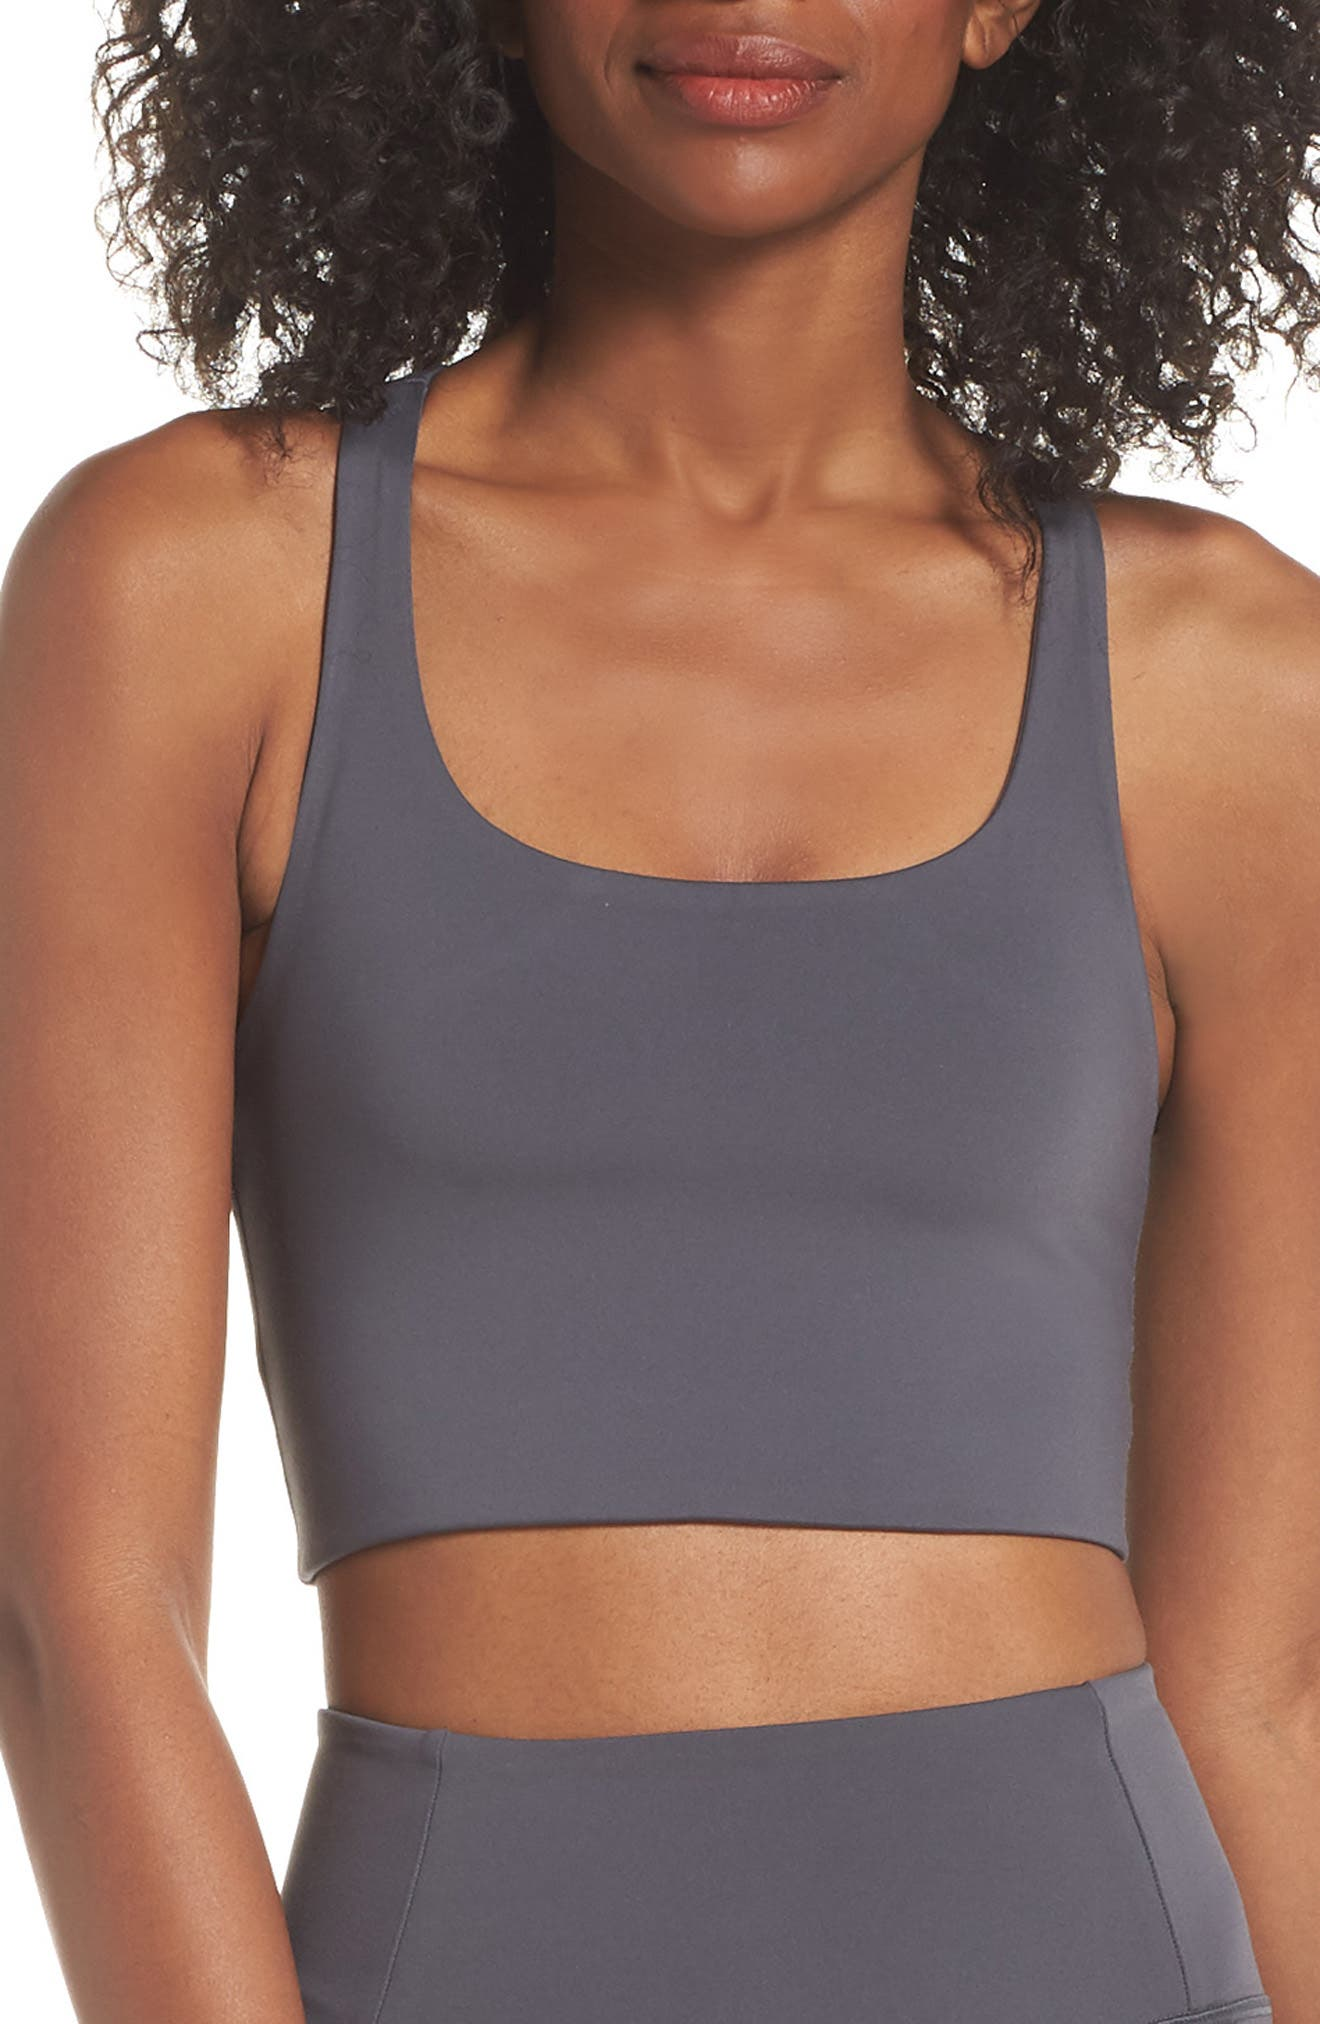 Girlfriend Collective Paloma Sports Bra, Grey